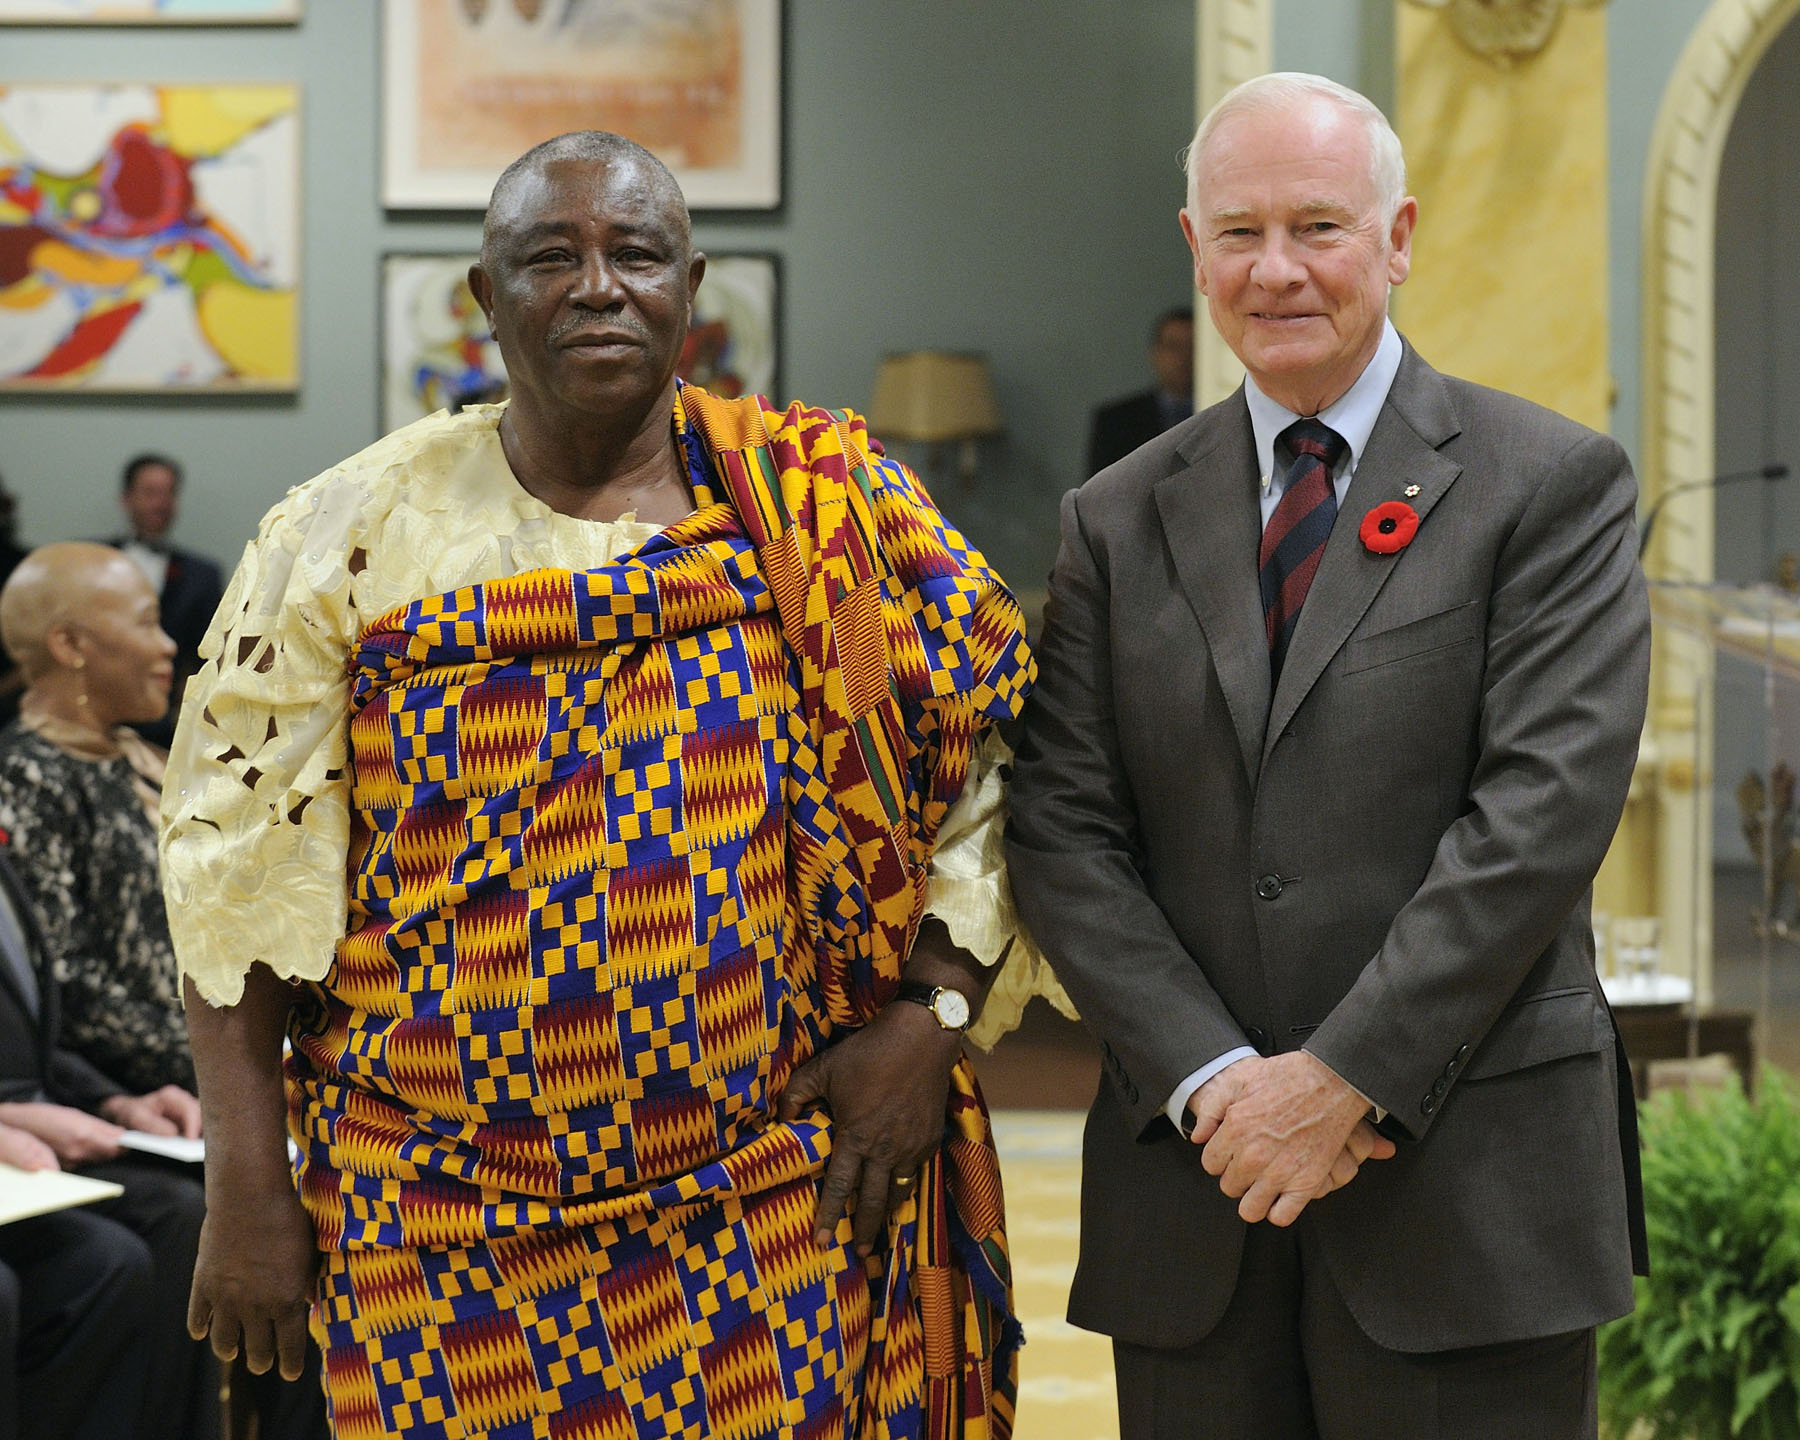 The Governor General received the credentials of His Excellency Samuel Valis-Akyianu, High Commissioner for the Republic of Ghana.